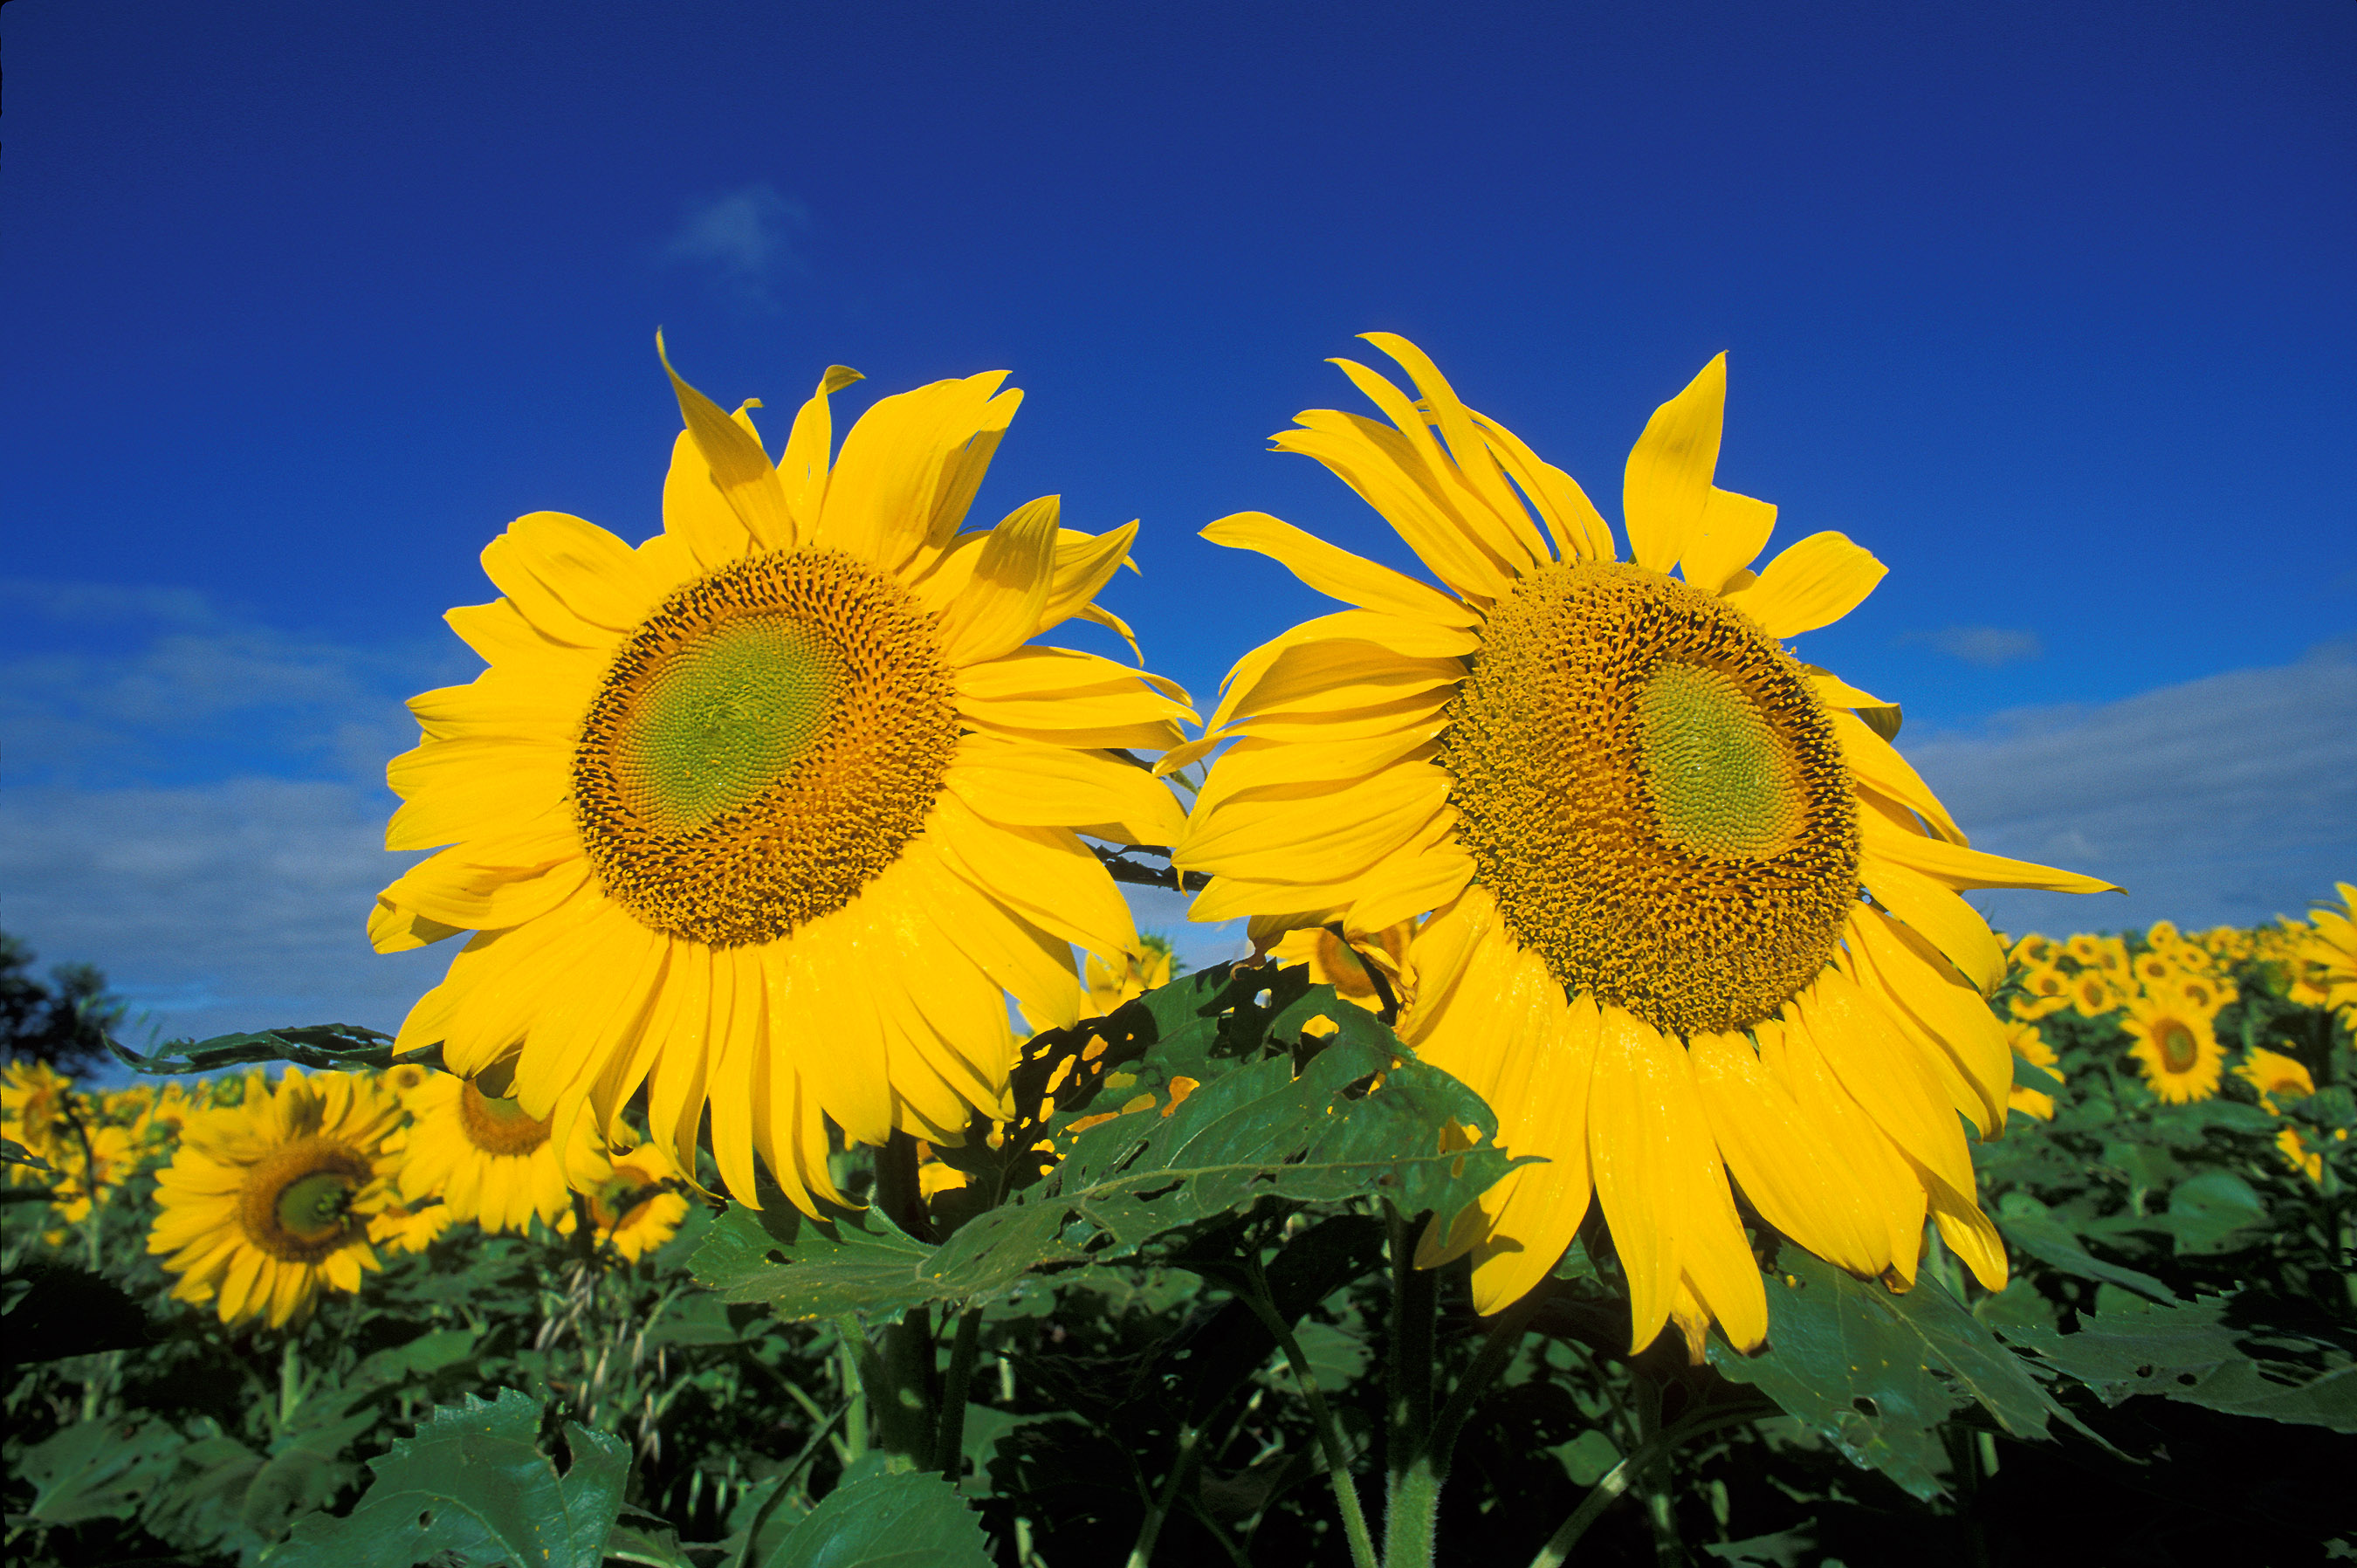 Sunflowers   Free Images at Clker.com - vector clip art ...